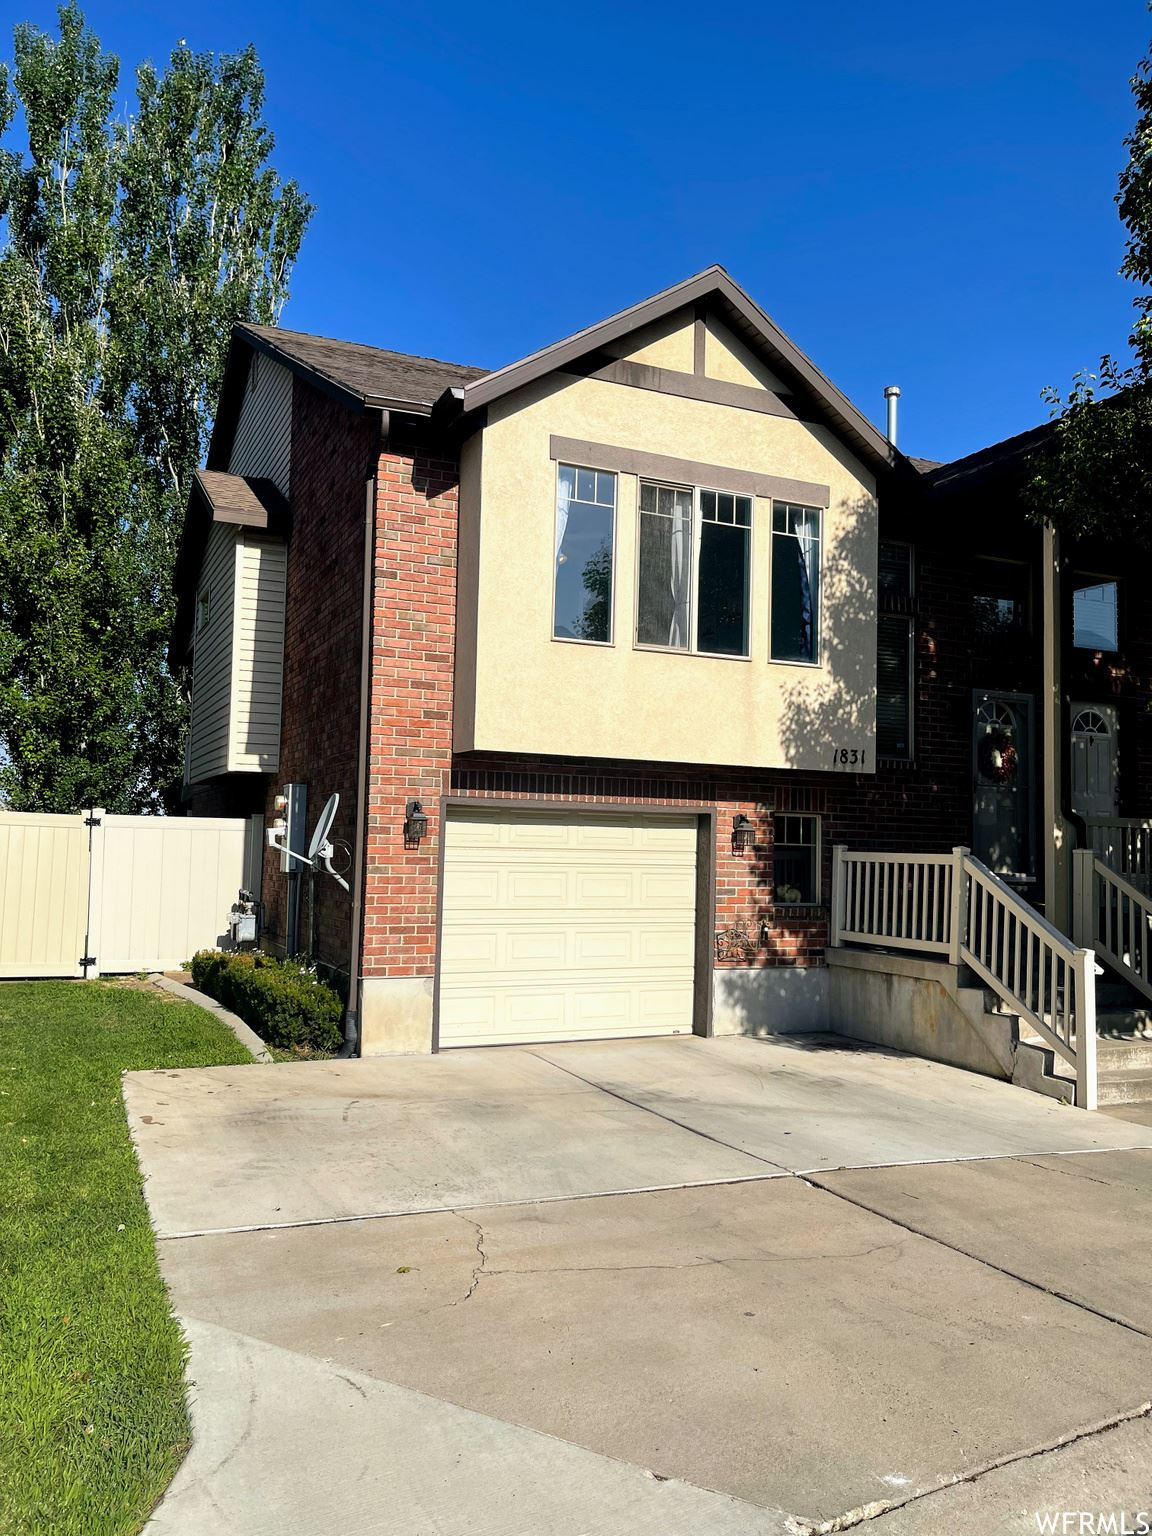 Photo of 1831 PAGES PL, Bountiful, UT 84010 (MLS # 1756820)